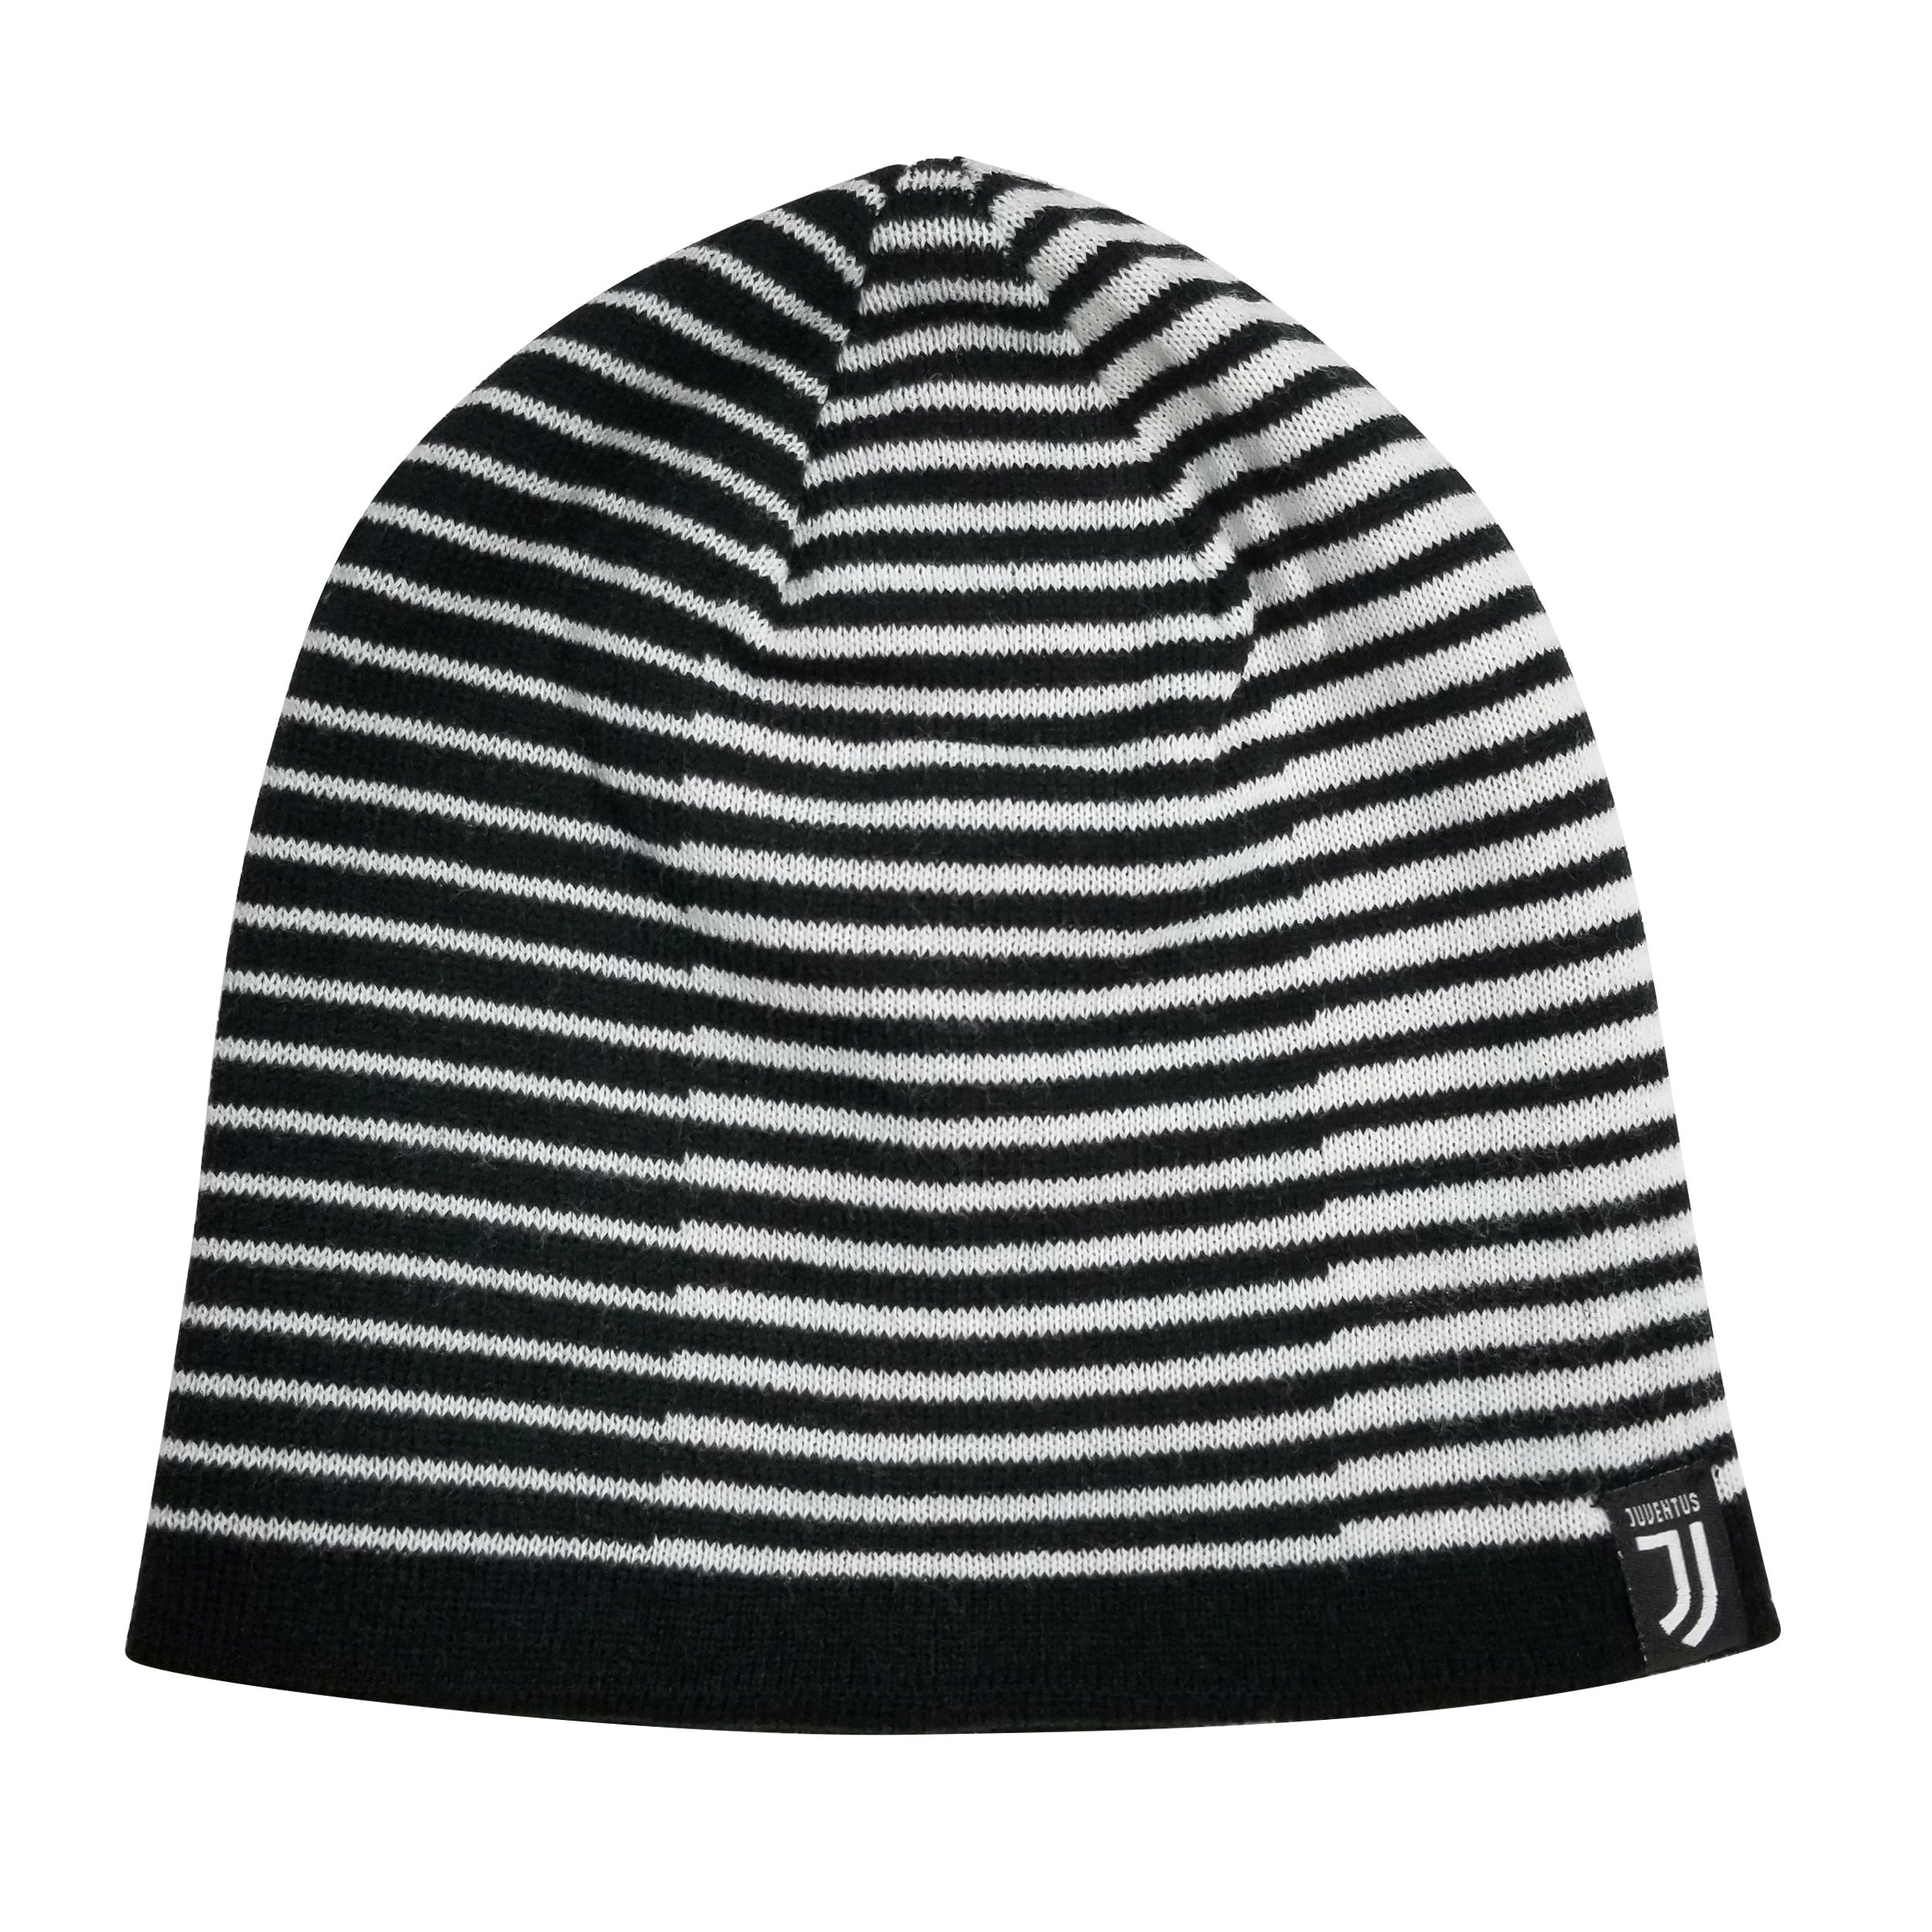 Juventus F.C. Reversible Beanie - Black & White by Icon Sports